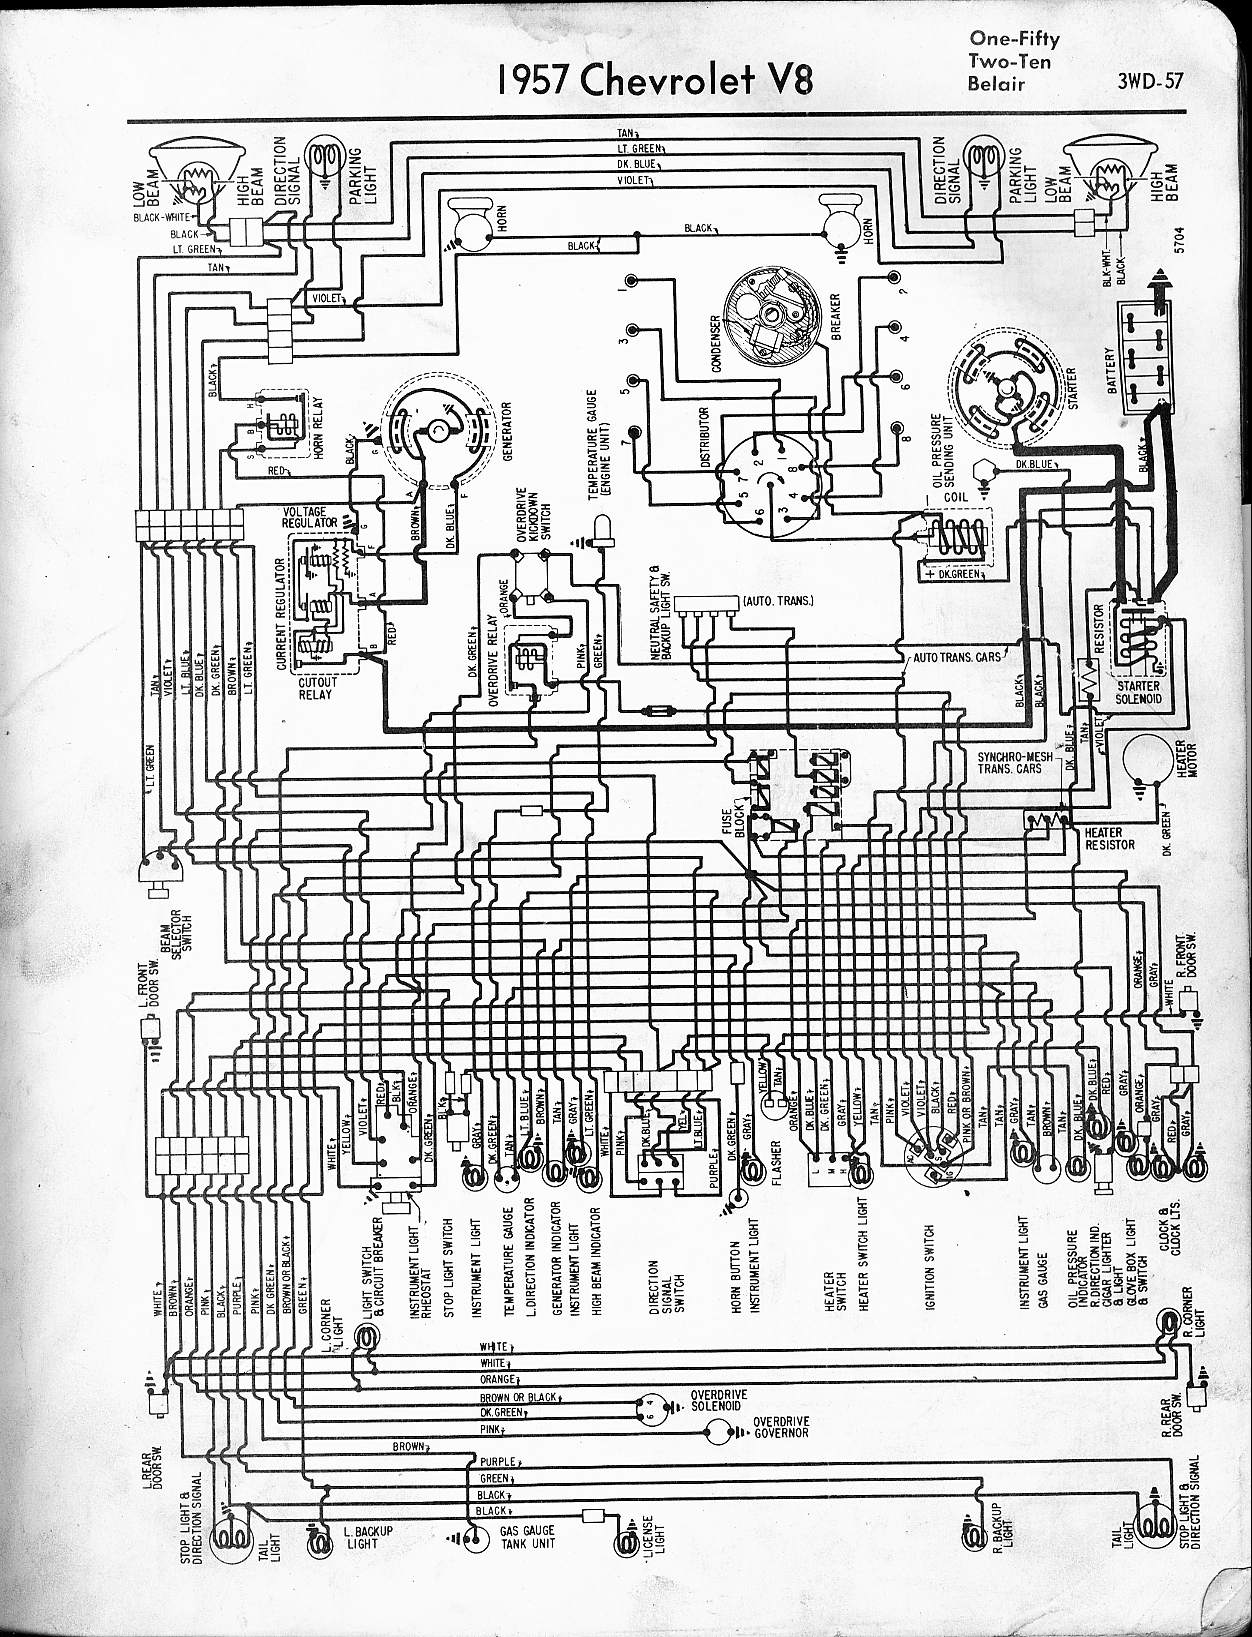 68 Chevy Tail Light Wiring Harness Diagram Will Be A Thing 2004 S430 Fuse Box 55 Content Resource Of Rh Uberstuff Co Chevrolet